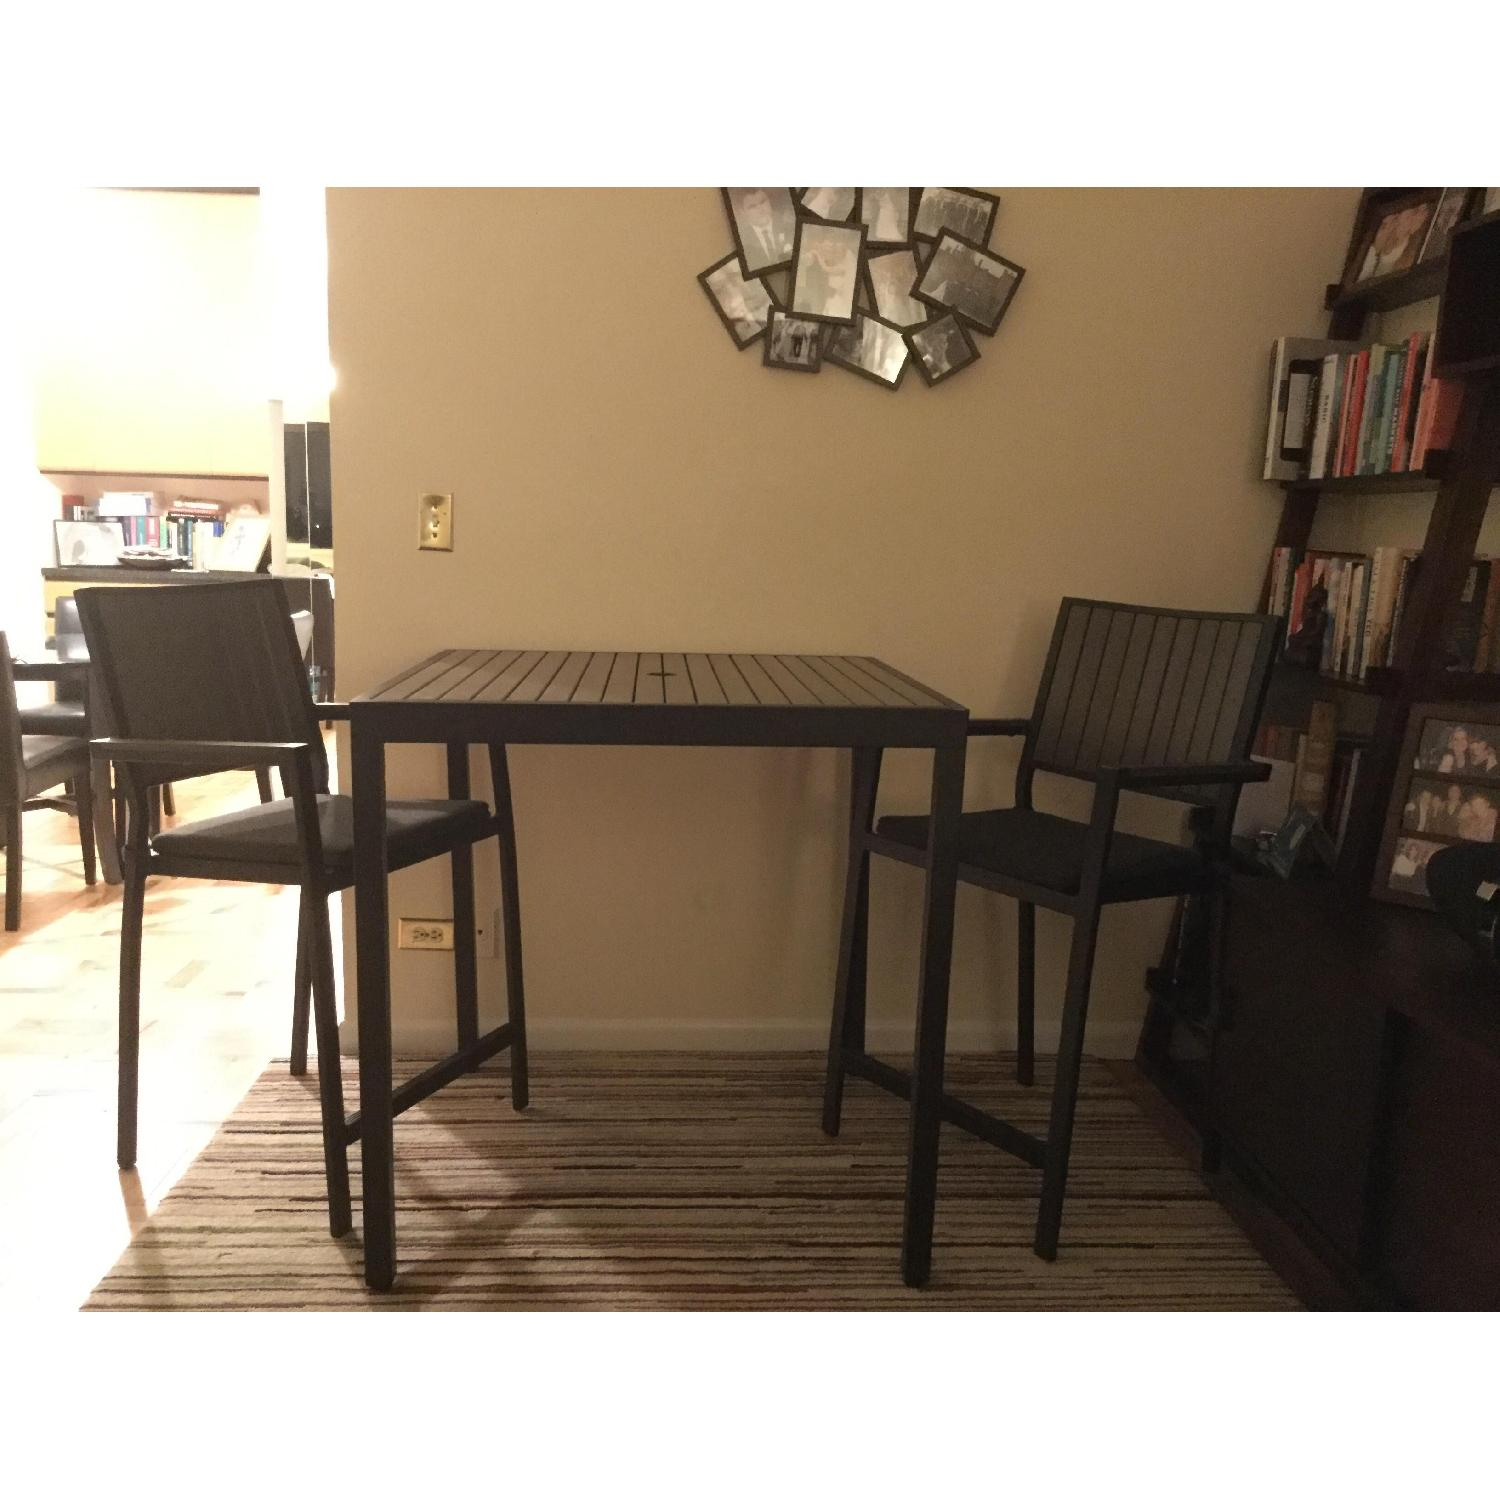 Crate & Barrel Alfresco Home Outdoor Dining Table w/ 2 Chairs - image-1